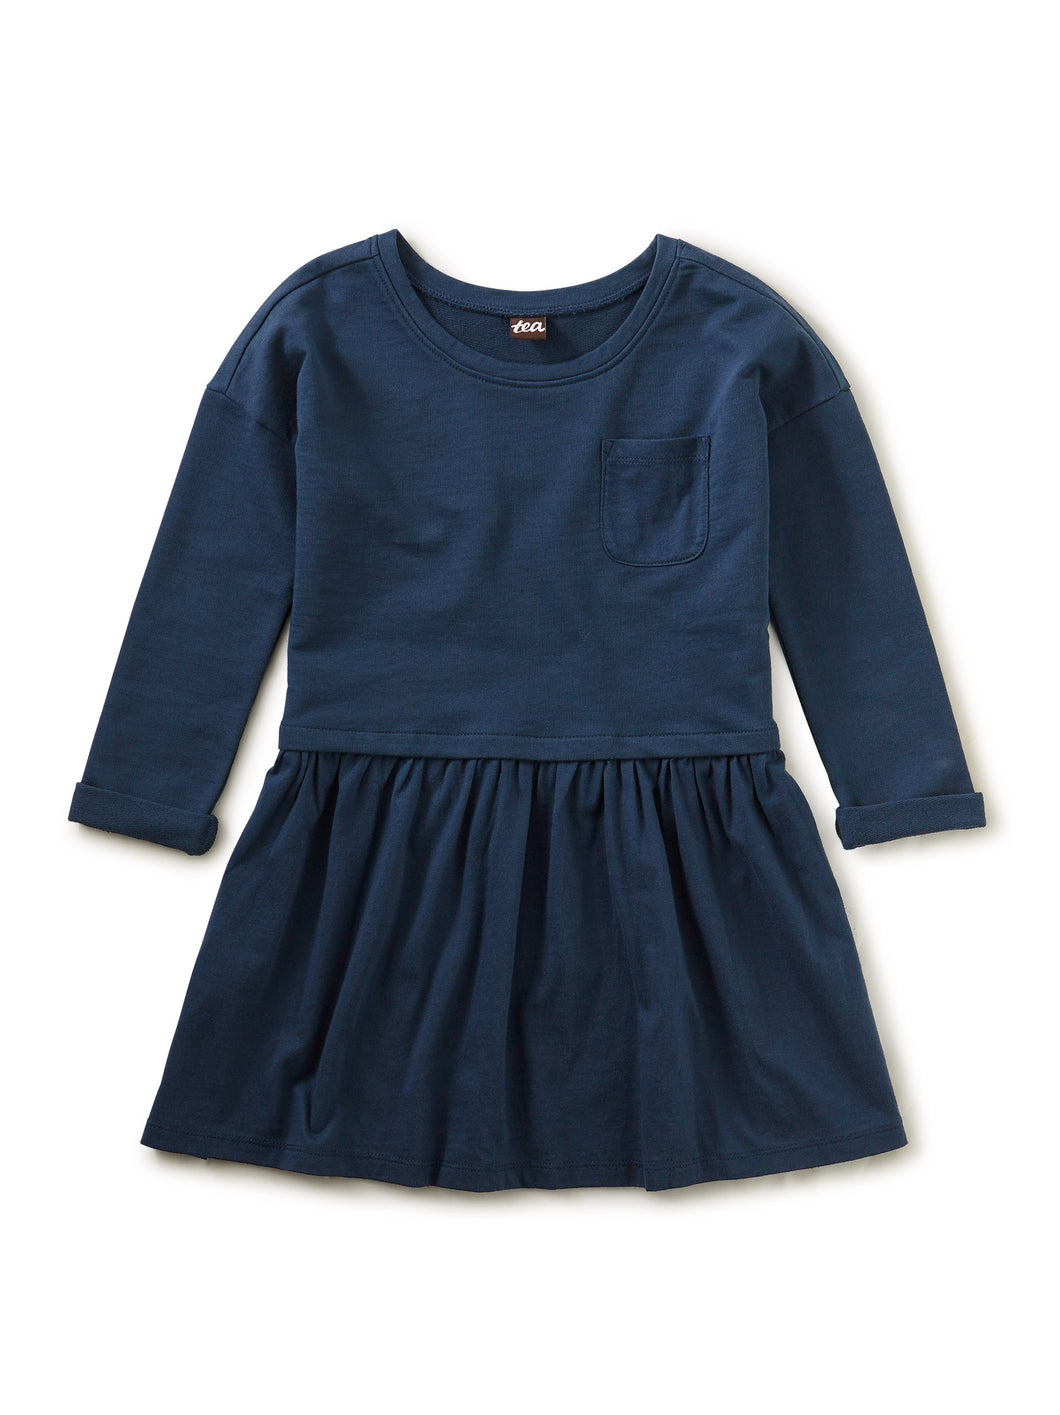 Tea Collection Pocket Play Dress - Whale Blue